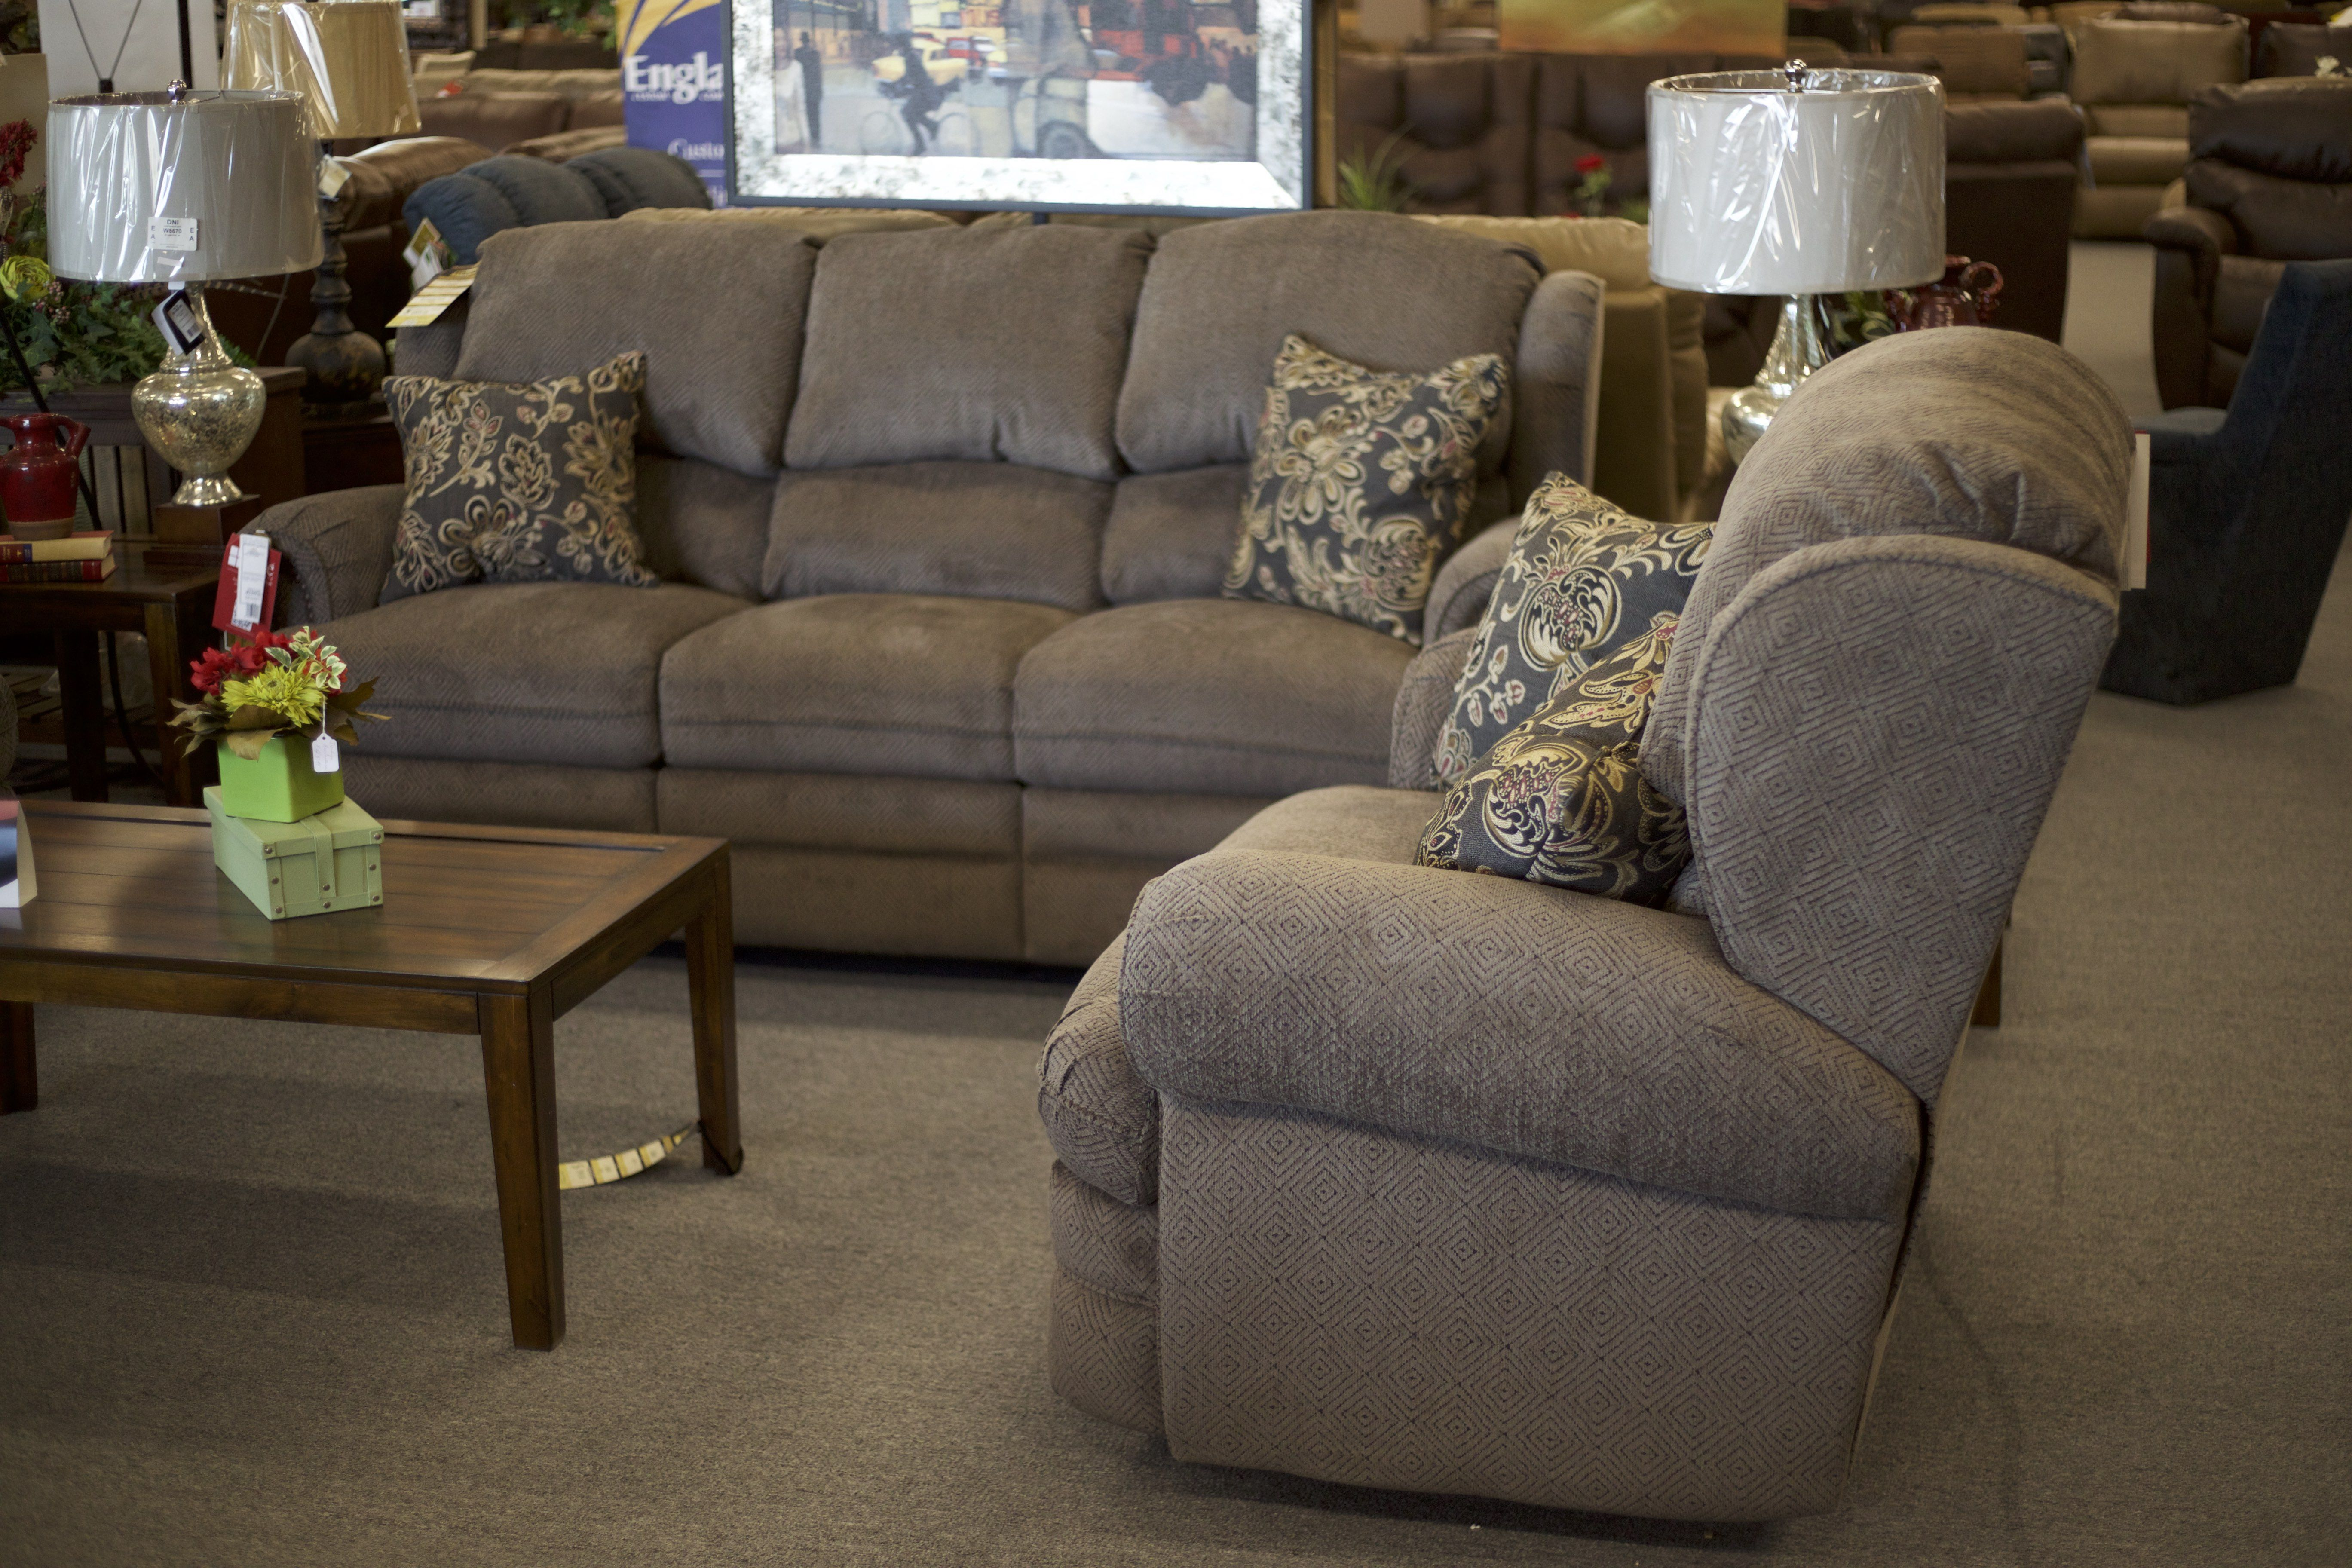 Darbys Furniture Image By